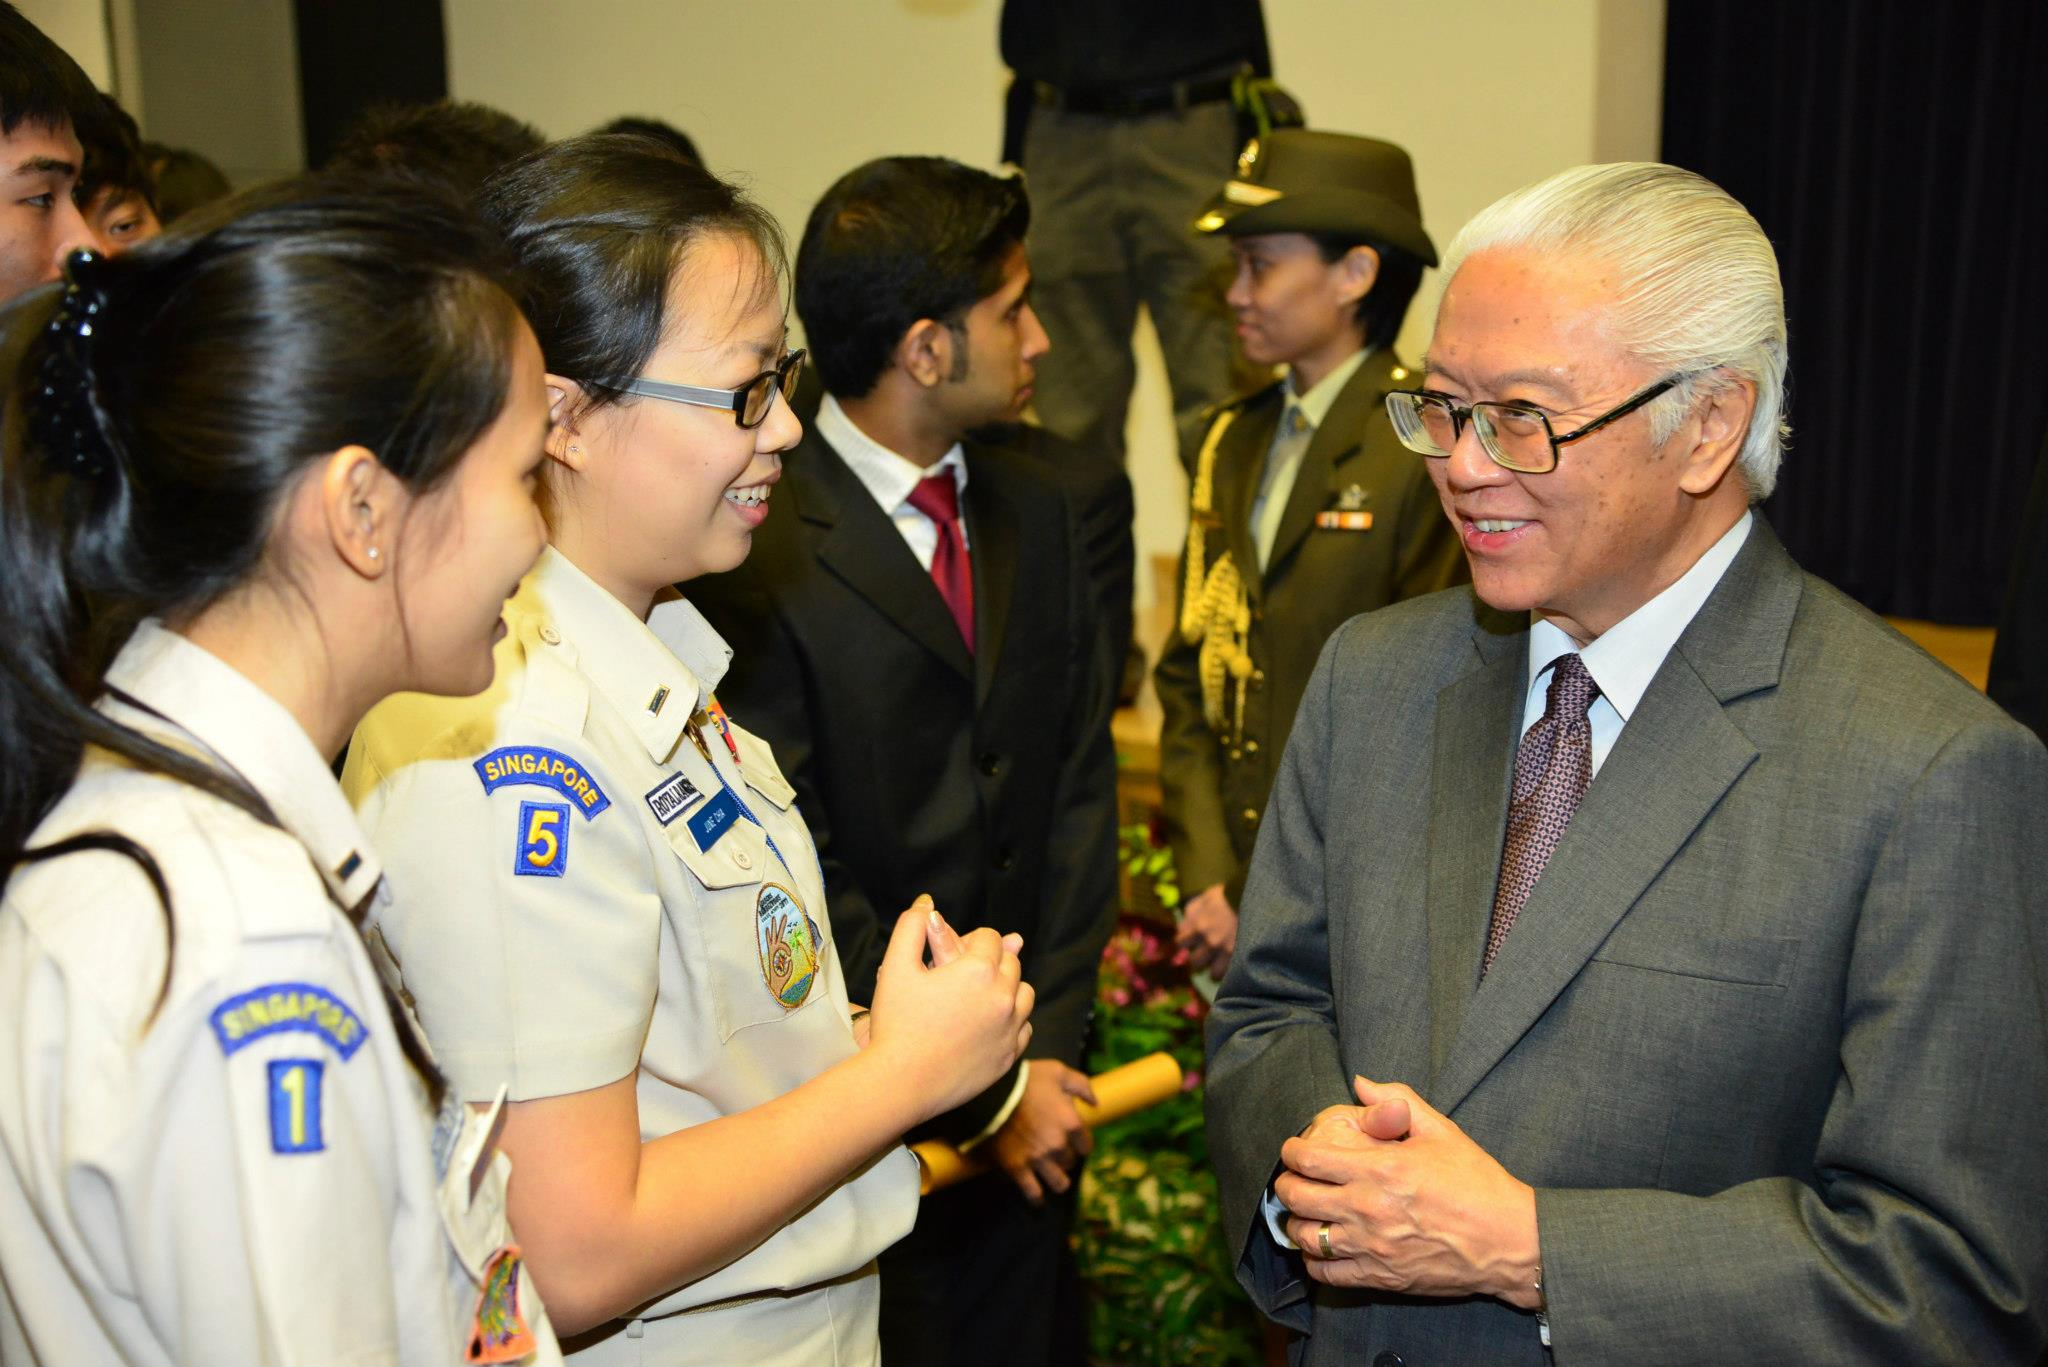 Cmdrs June Chia & Ivana Choo speaking with President Tony Tan at the NYAA Gold Award Ceremony